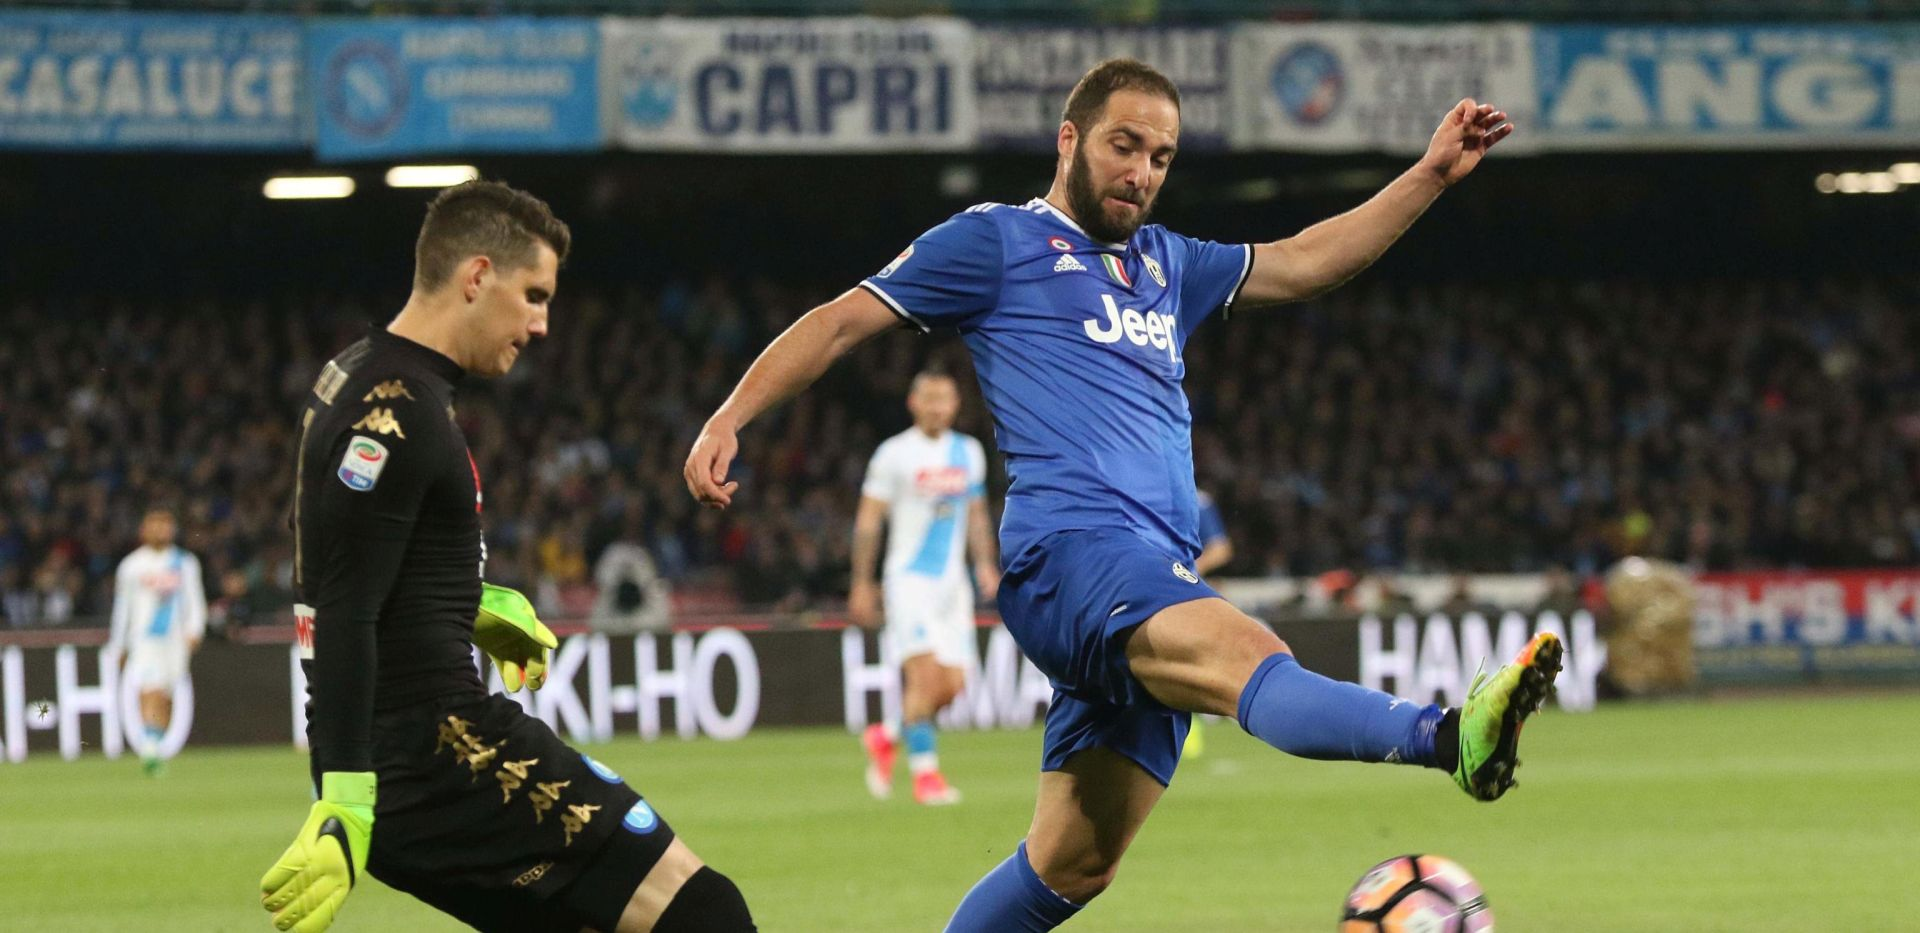 VIDEO Veliki derbi u Italiji: Napoli – Juventus 0-1